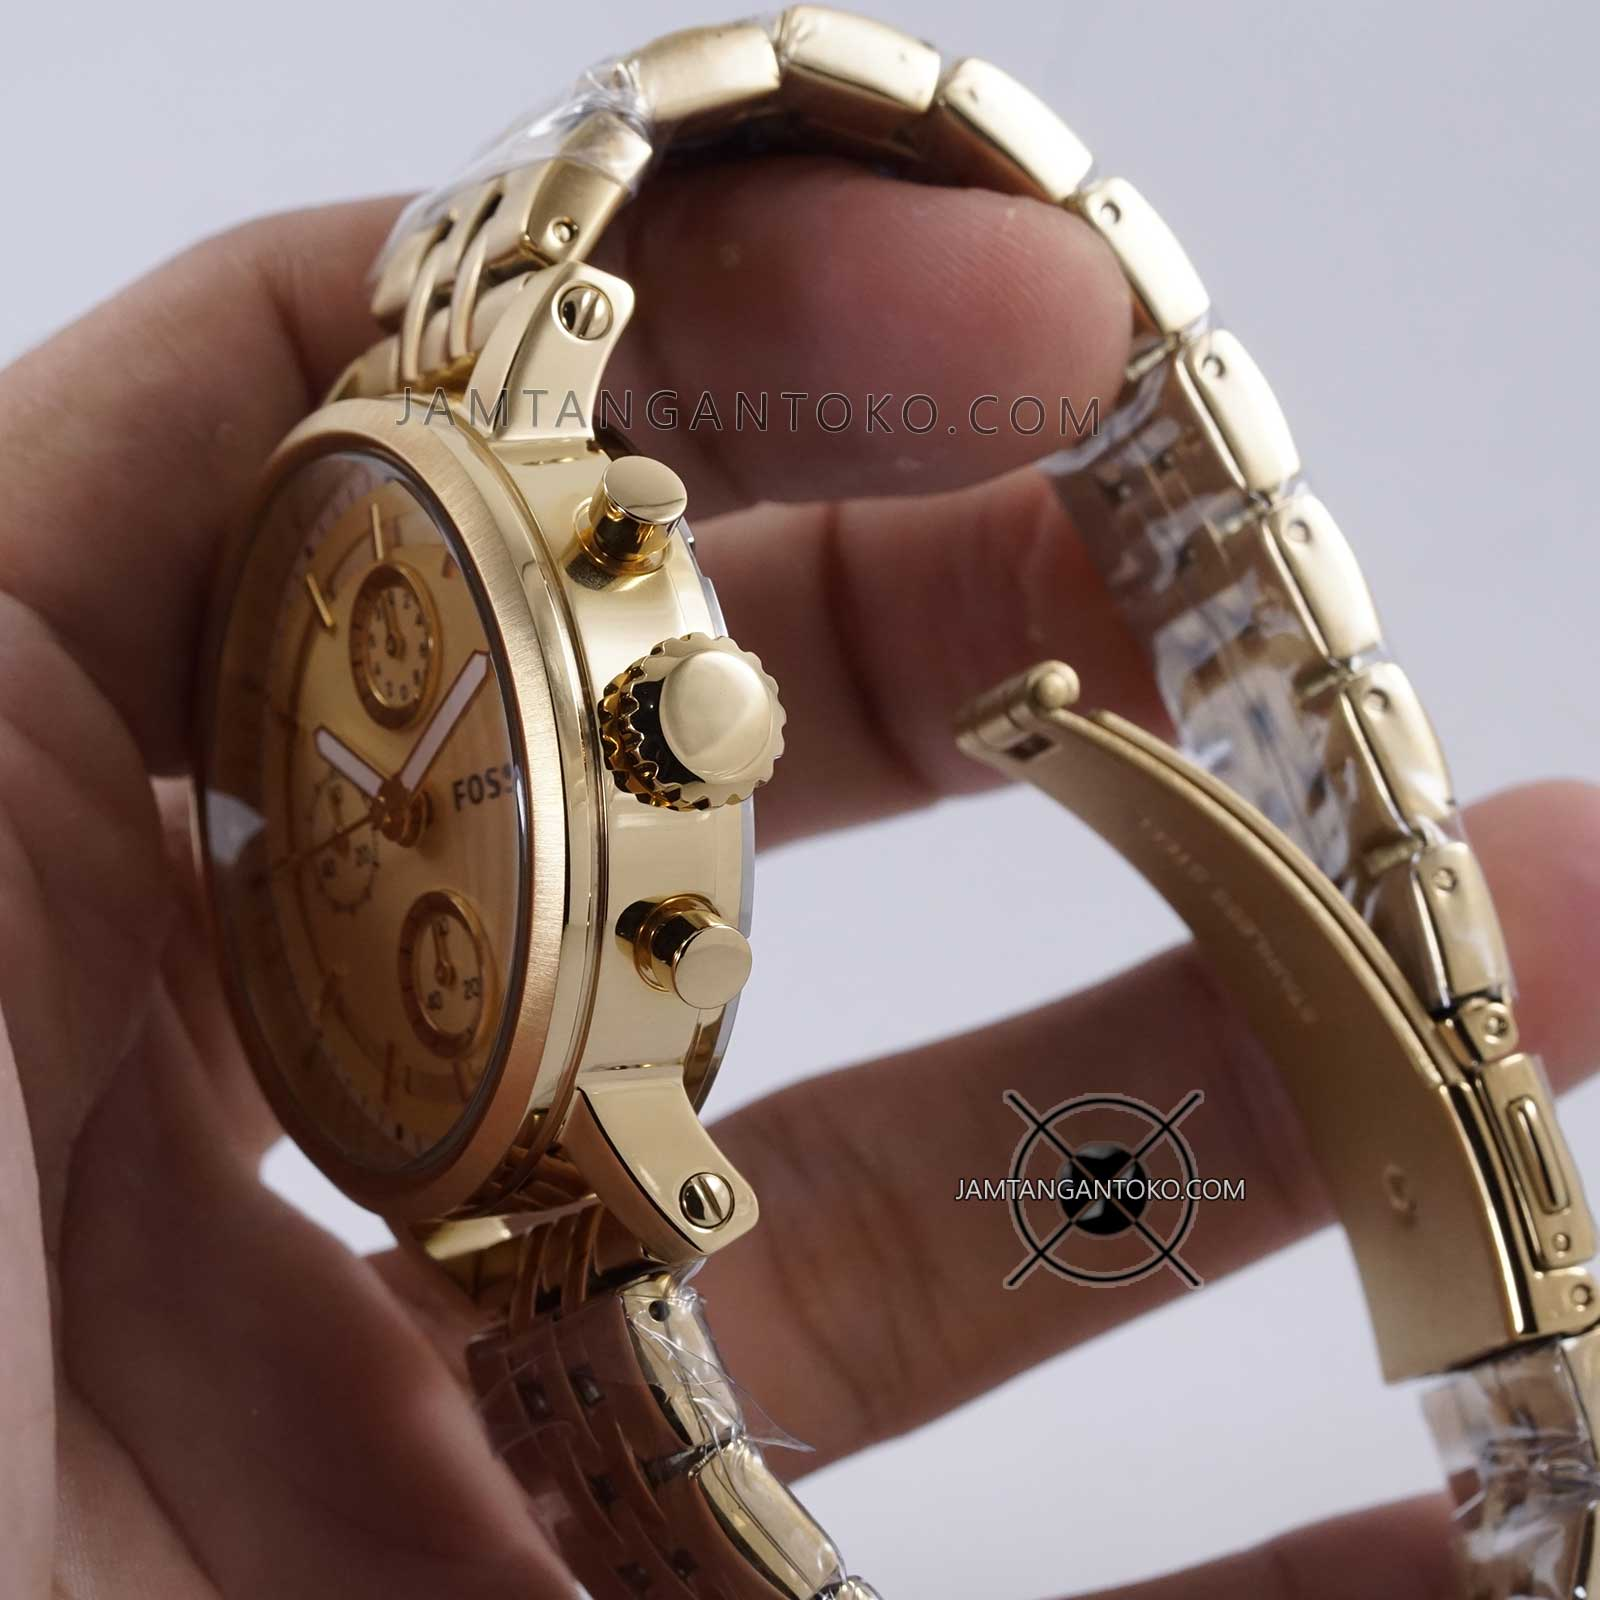 Fossil Jam Tangan Wanita Choronograp Display Analog Quartz Watch Original Es3264 Bagian Crown